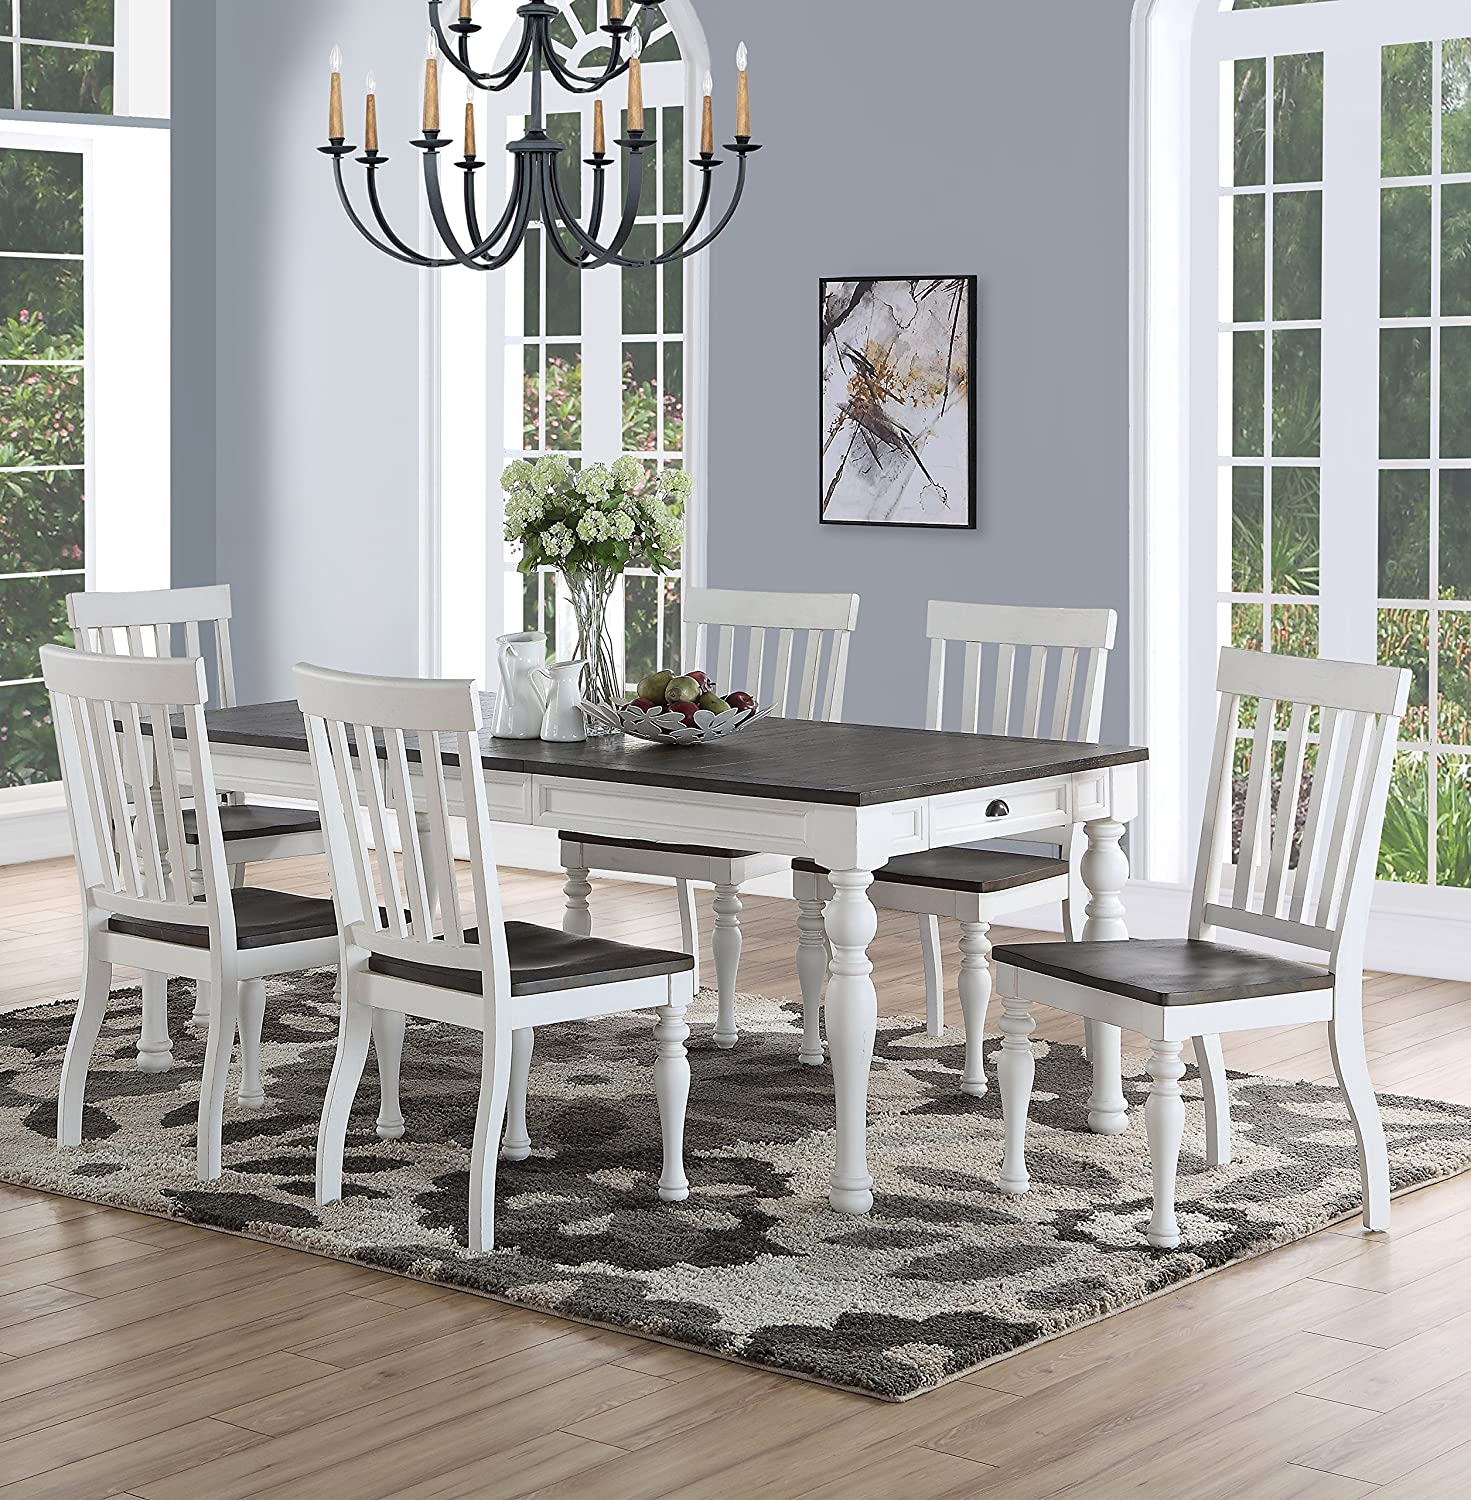 Fabulous Joanna Two Tone 7 Piece Dining Set Download Free Architecture Designs Estepponolmadebymaigaardcom